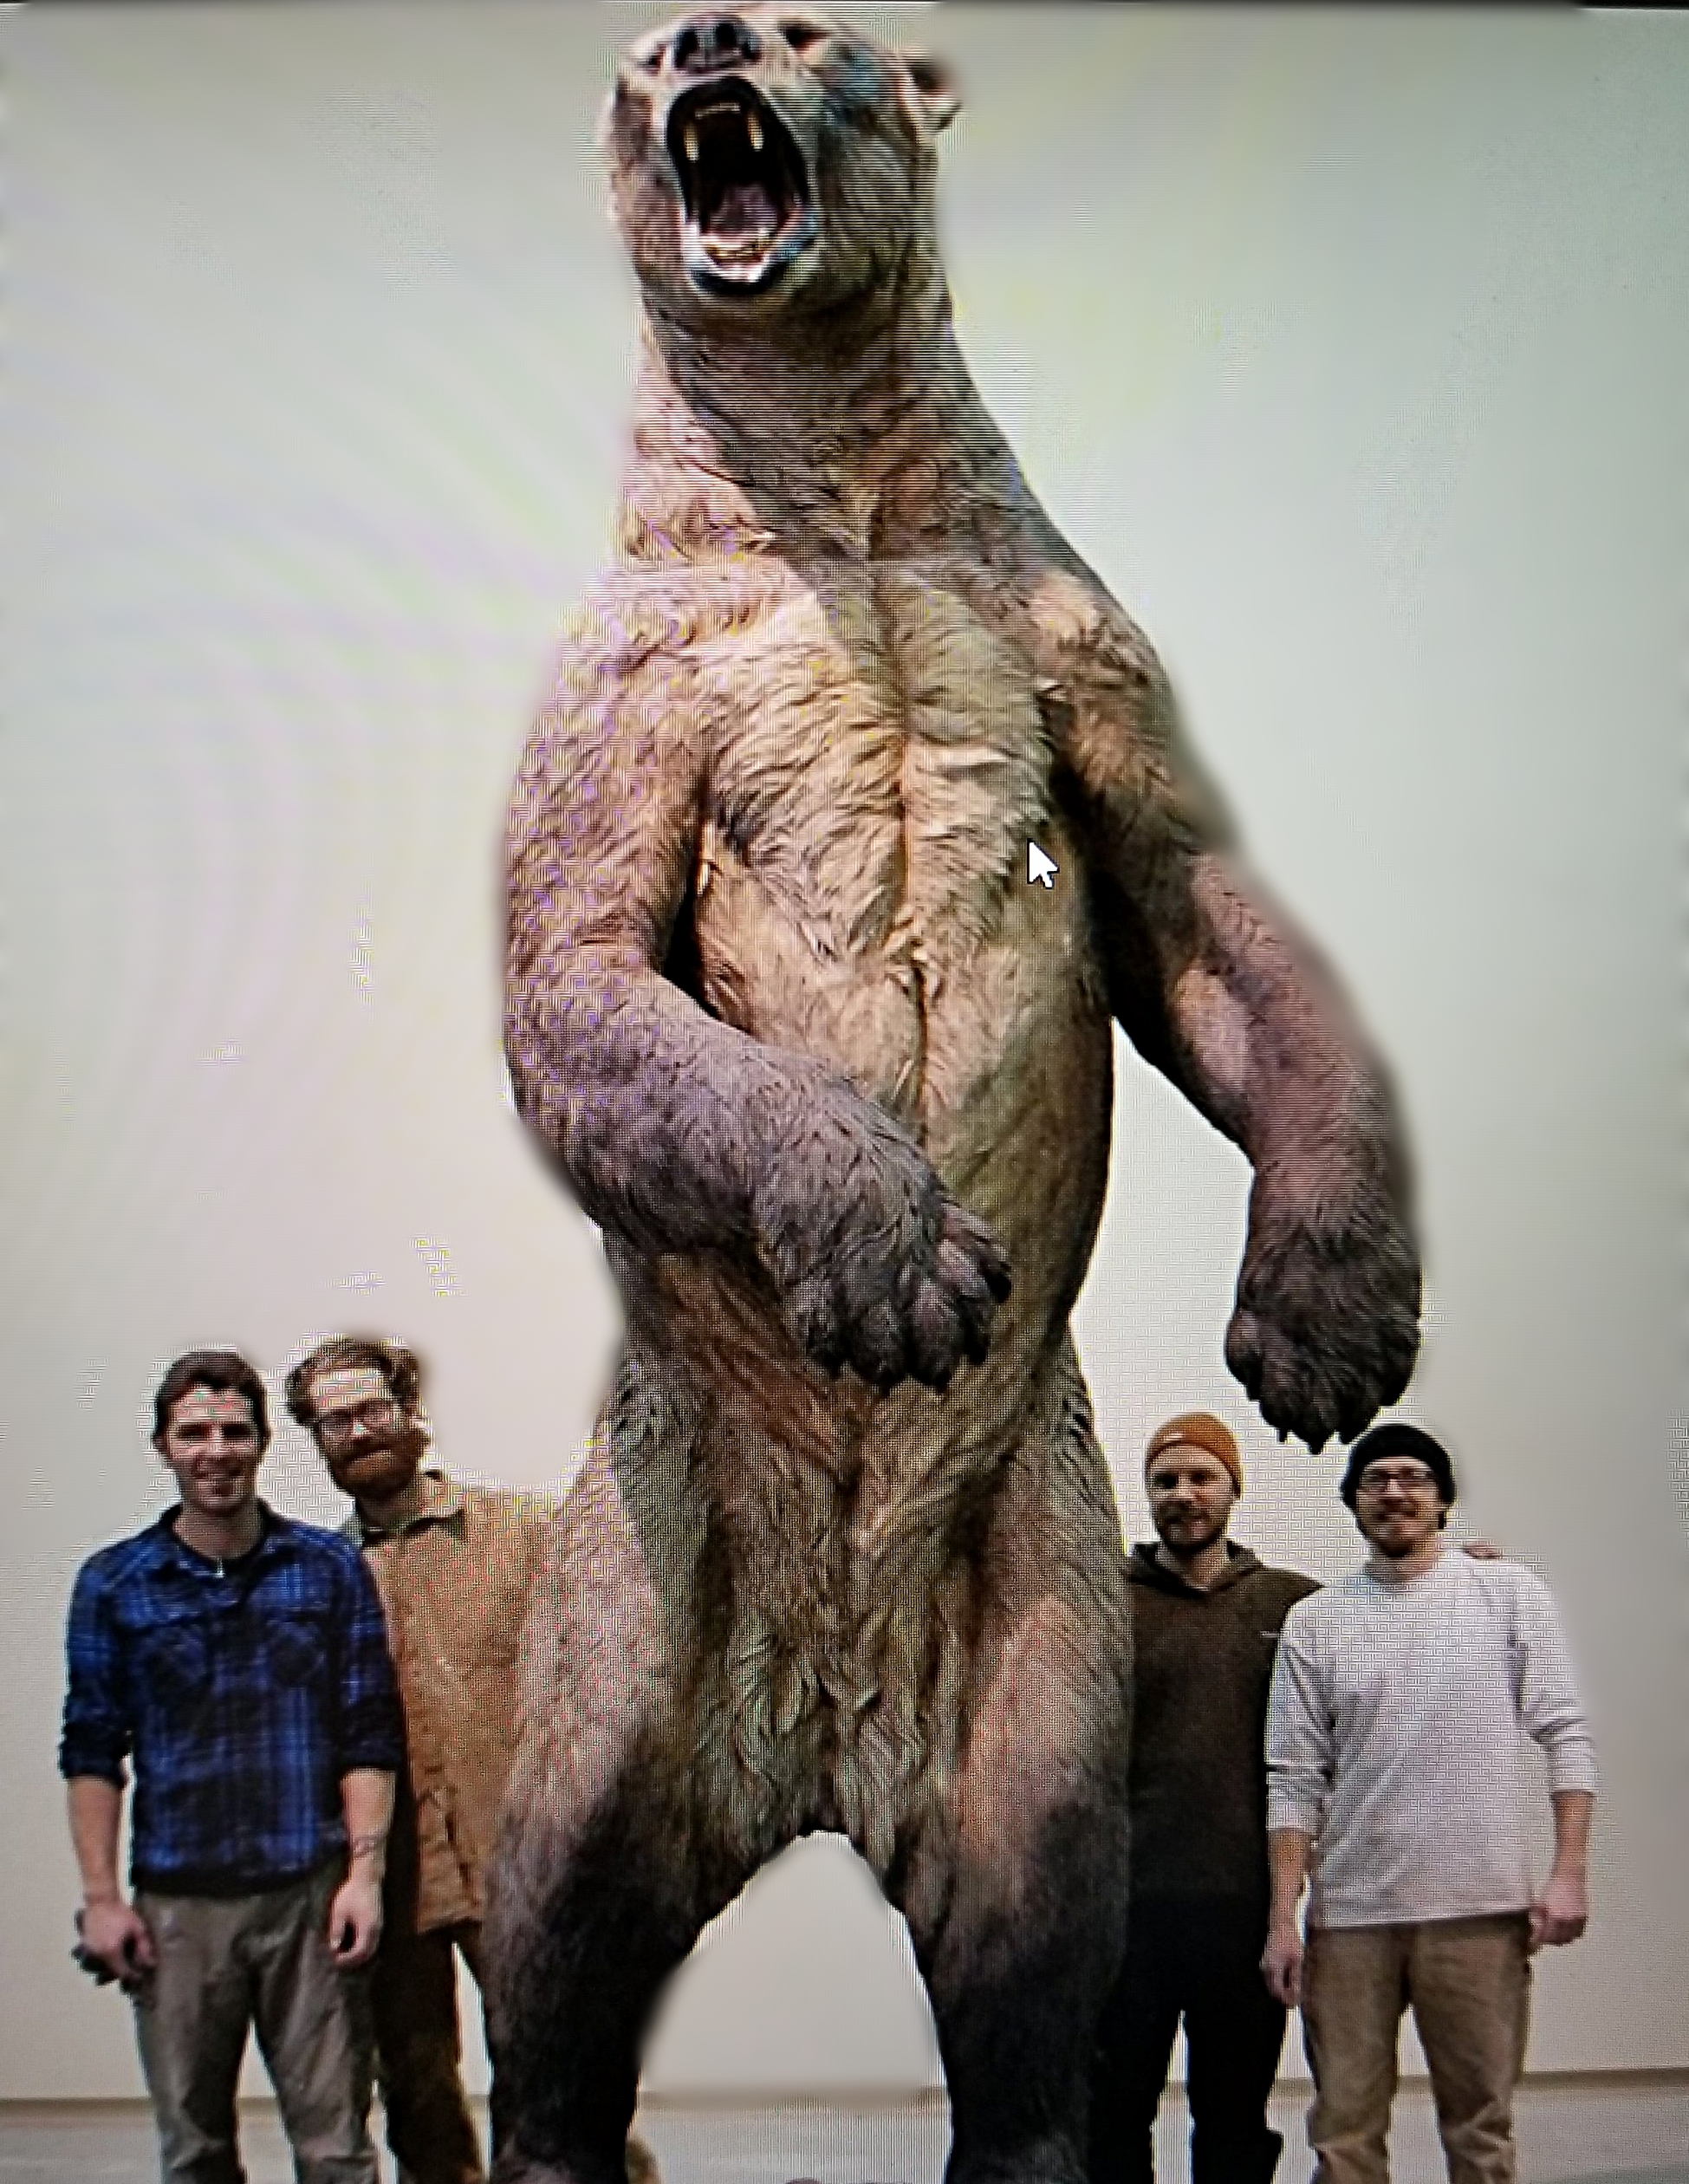 Seriously big bear (I borrowed this photo; credits unknown - sorry)